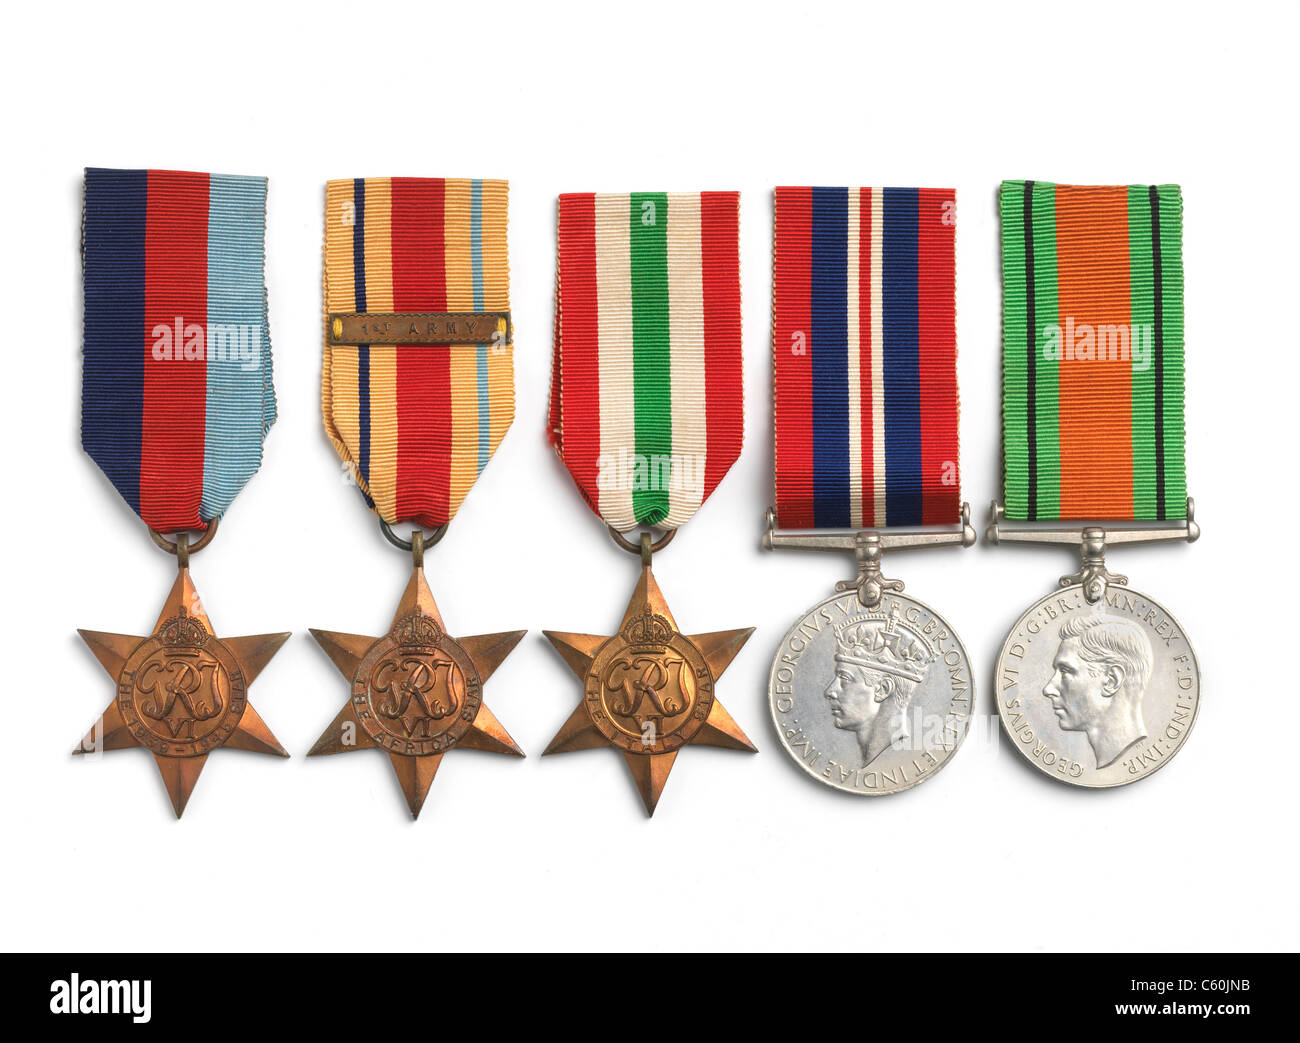 British and Commonwealth campaign medals from WW2 on white - Stock Image